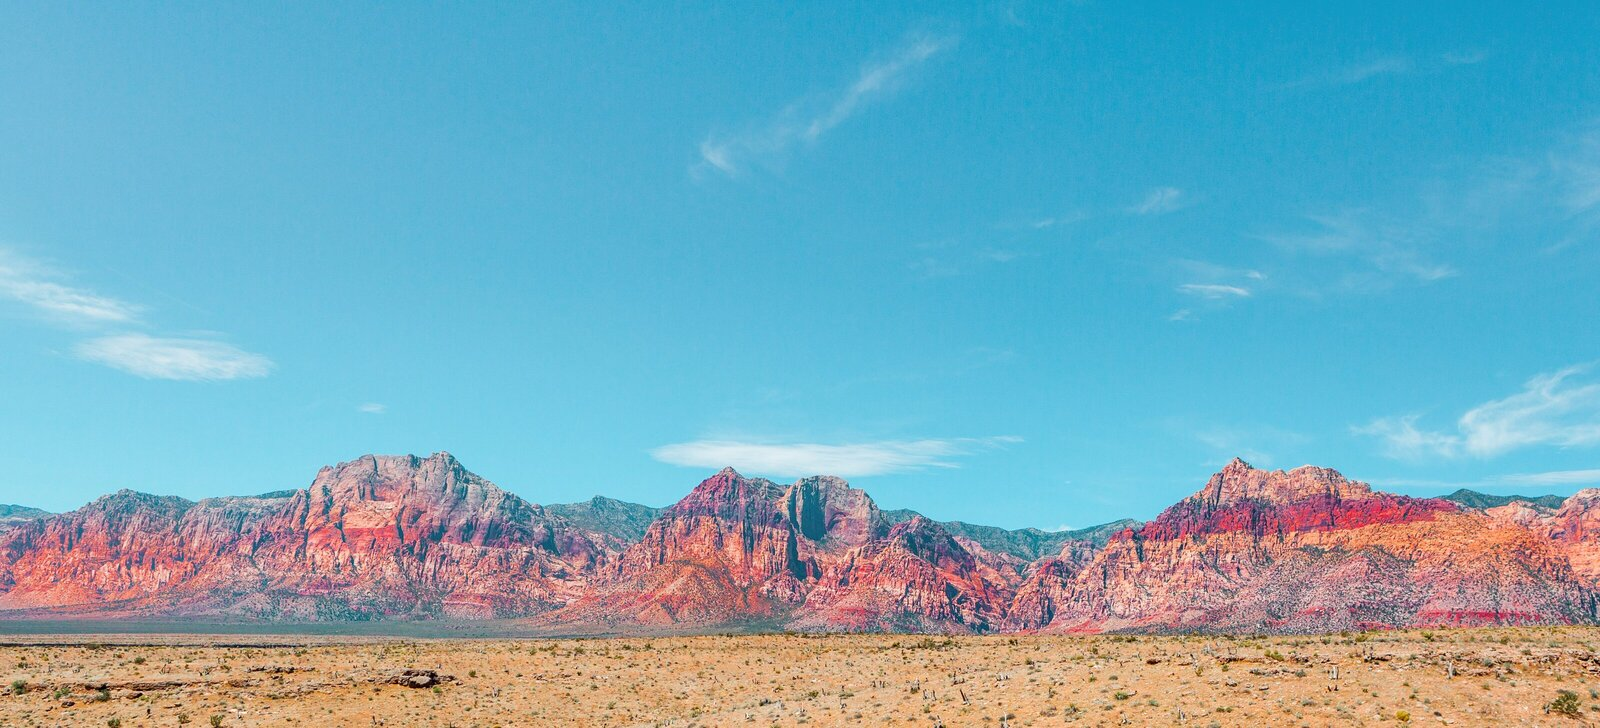 0033-USA-North-America-Red-Rock-Canyon-Nevada-0033.JPG